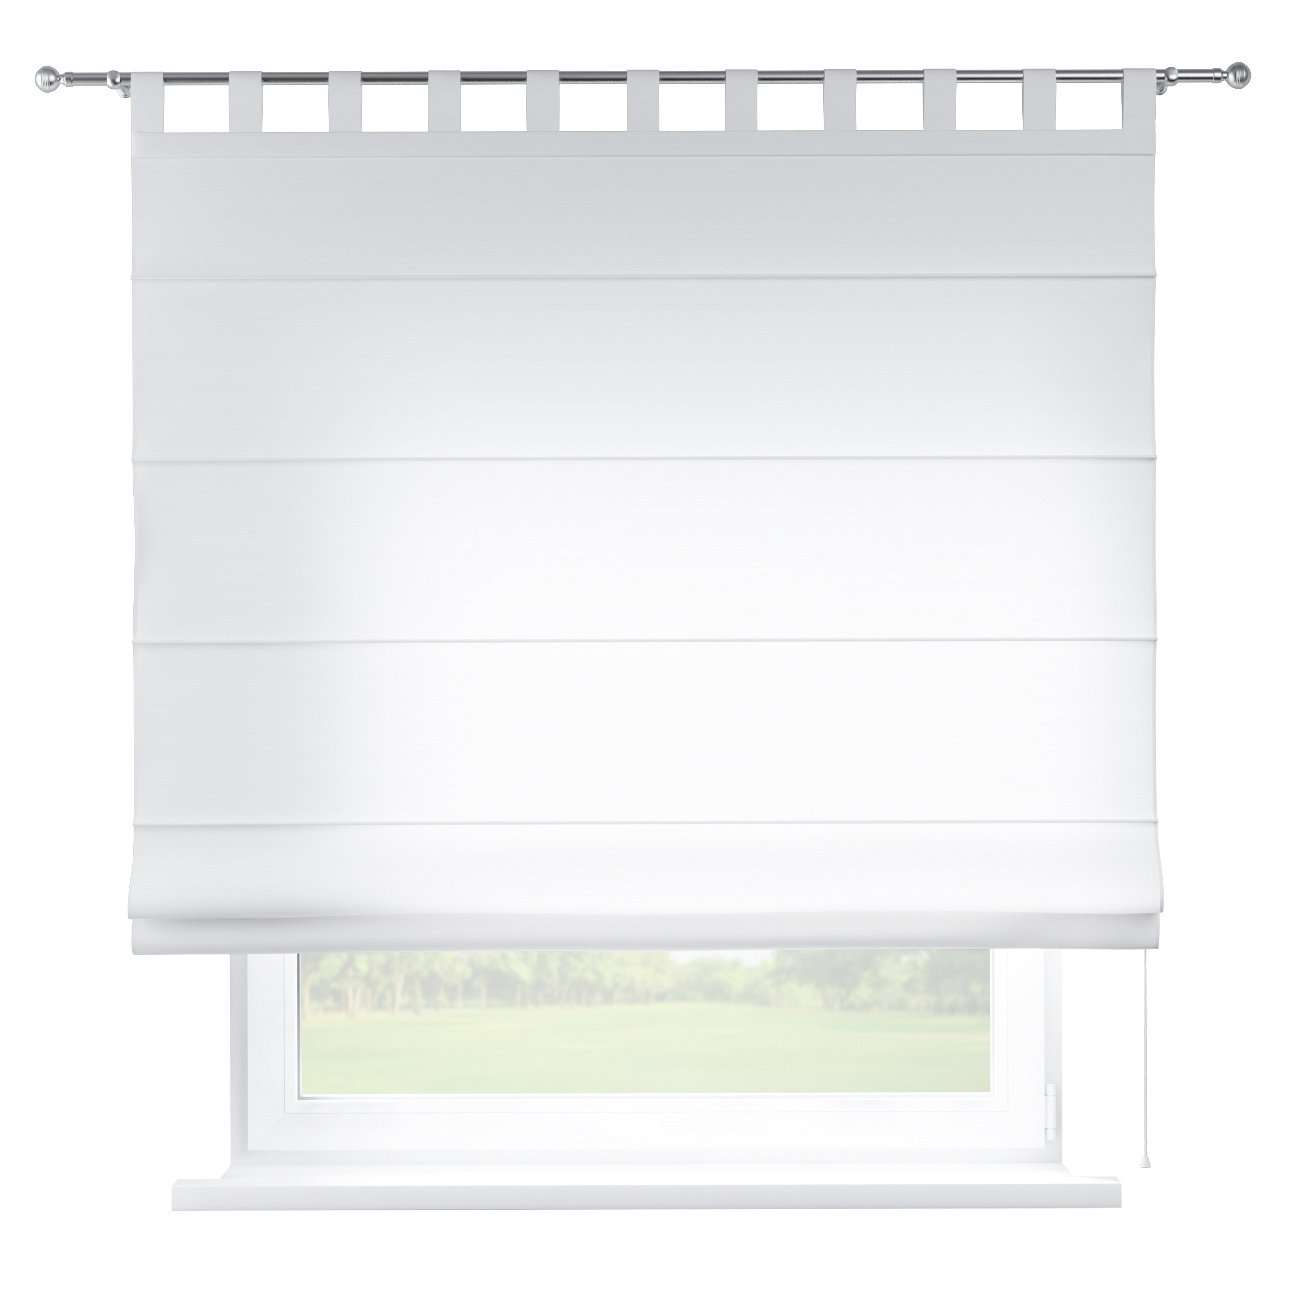 Verona tab top roman blind 80 × 170 cm (31.5 × 67 inch) in collection Jupiter, fabric: 127-01